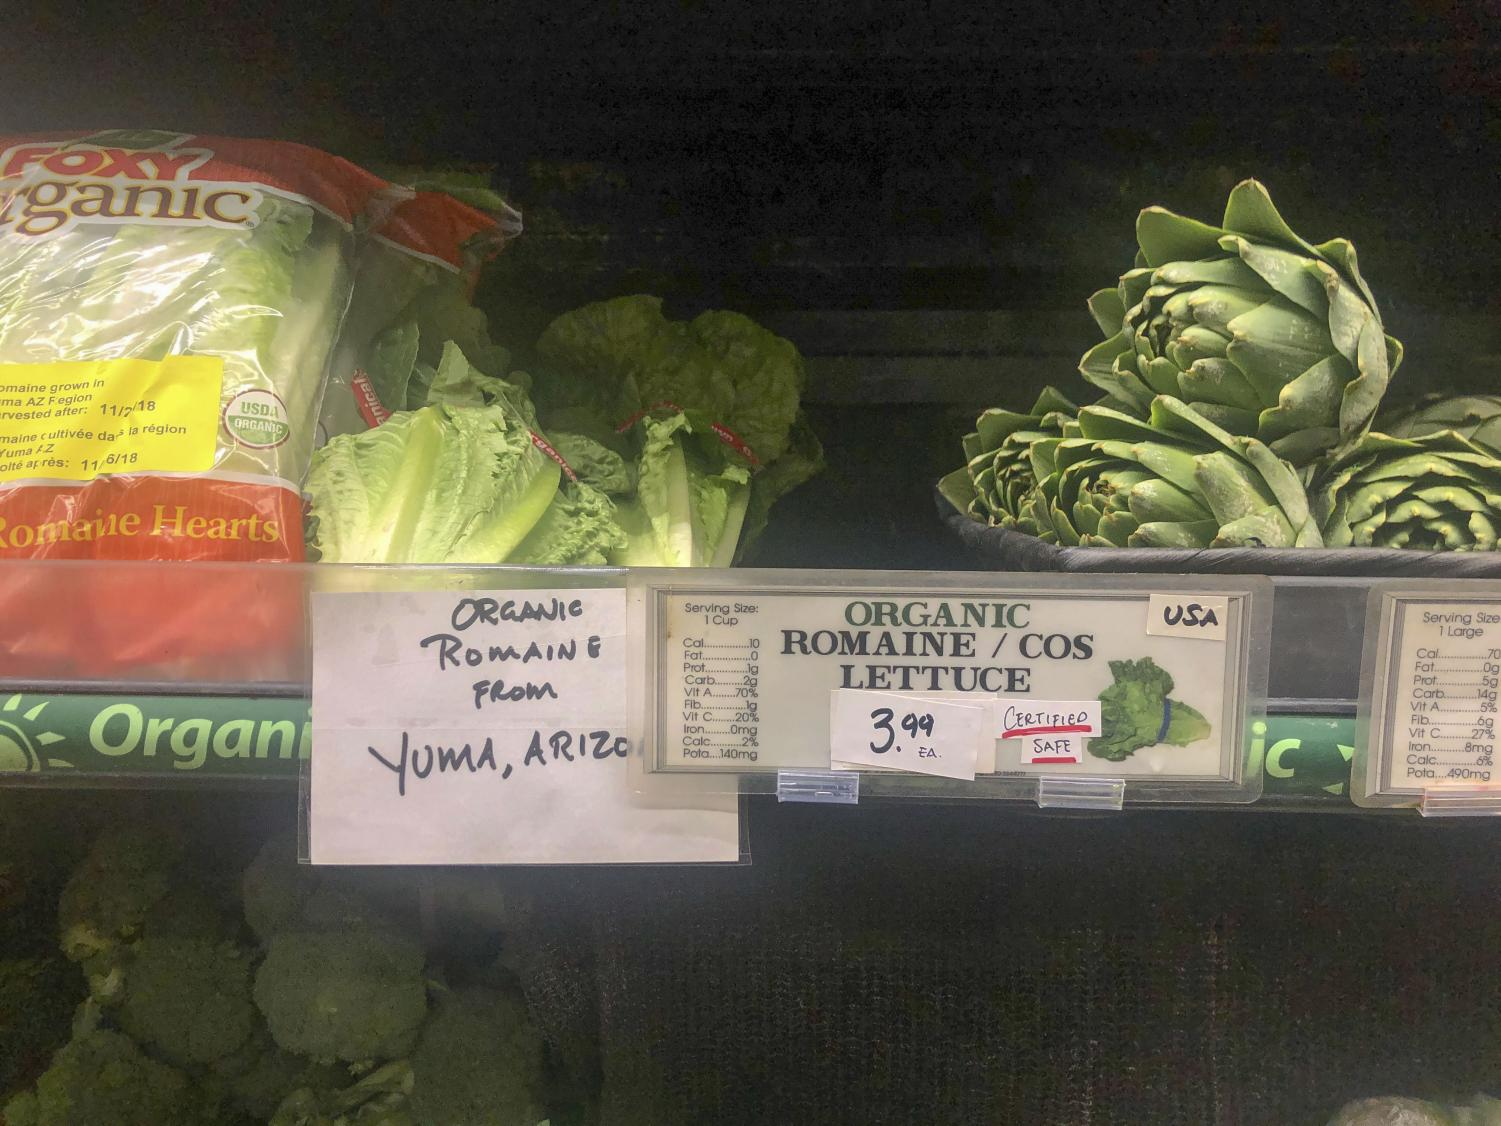 The new romaine labels have been put into place at Bianchini's market in San Carlos.